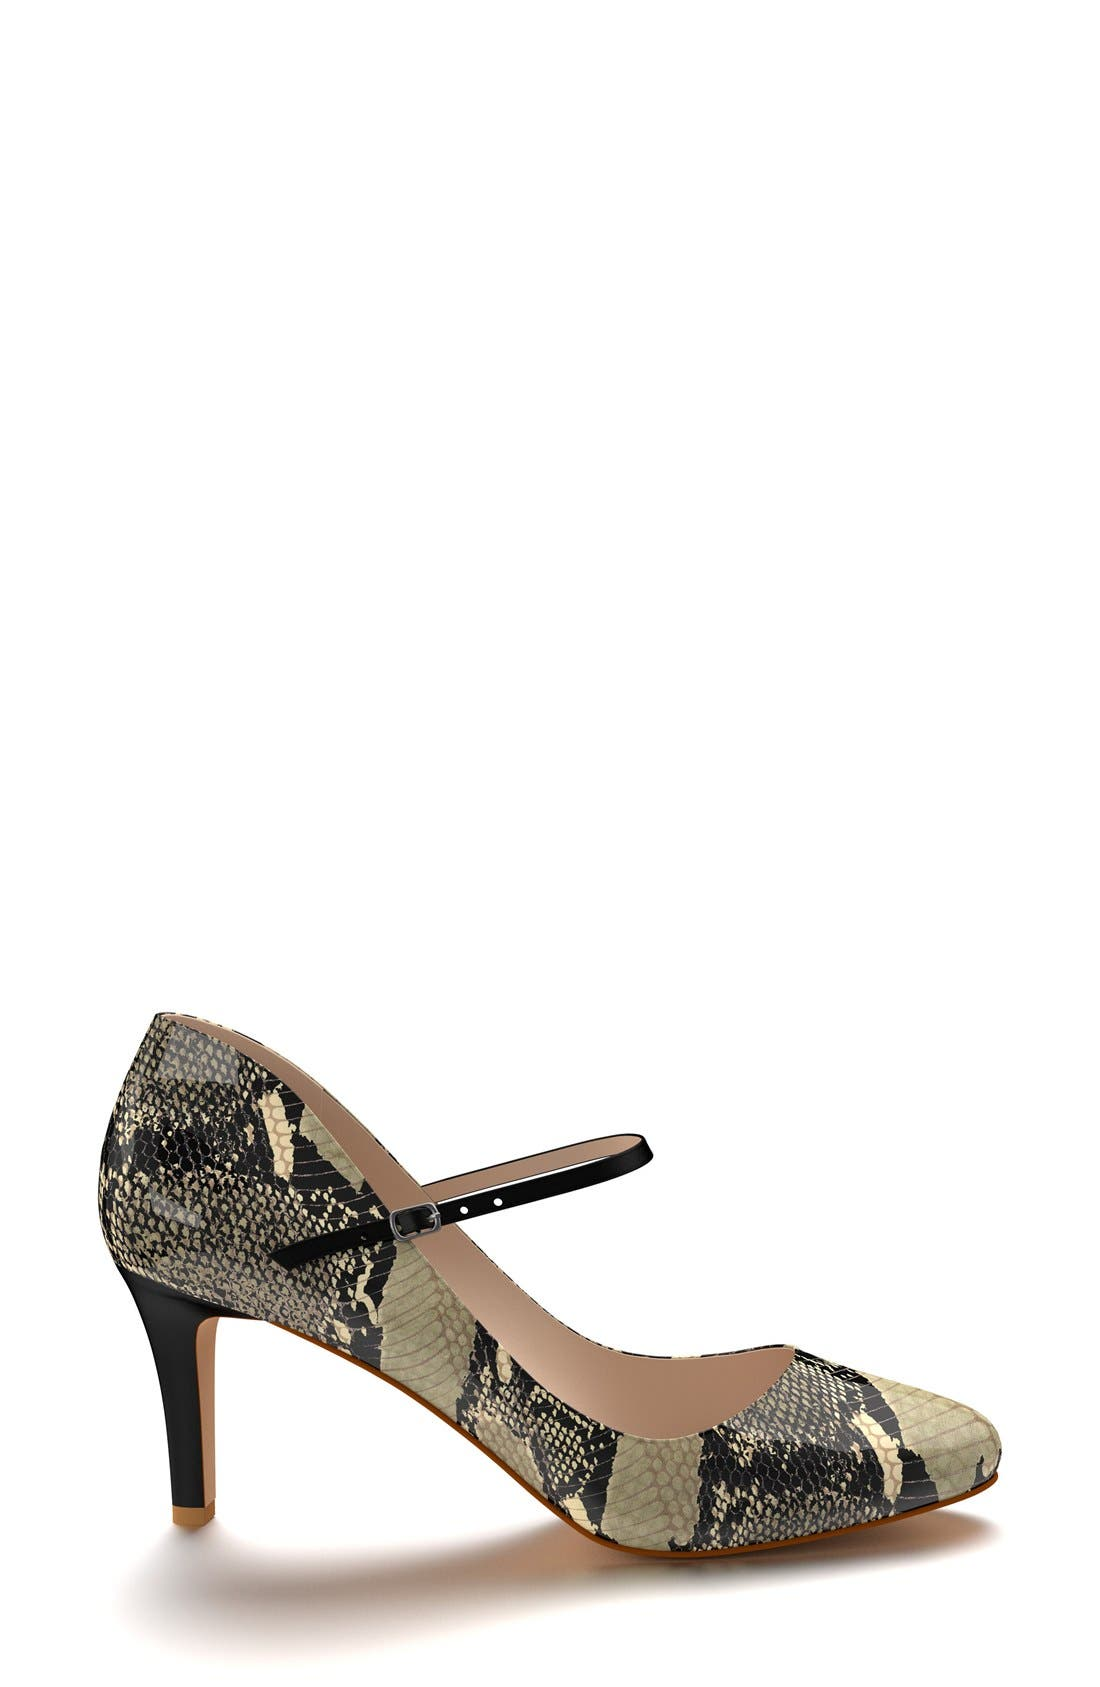 Mary Jane Pump,                             Alternate thumbnail 4, color,                             Beige Snake Print Leather